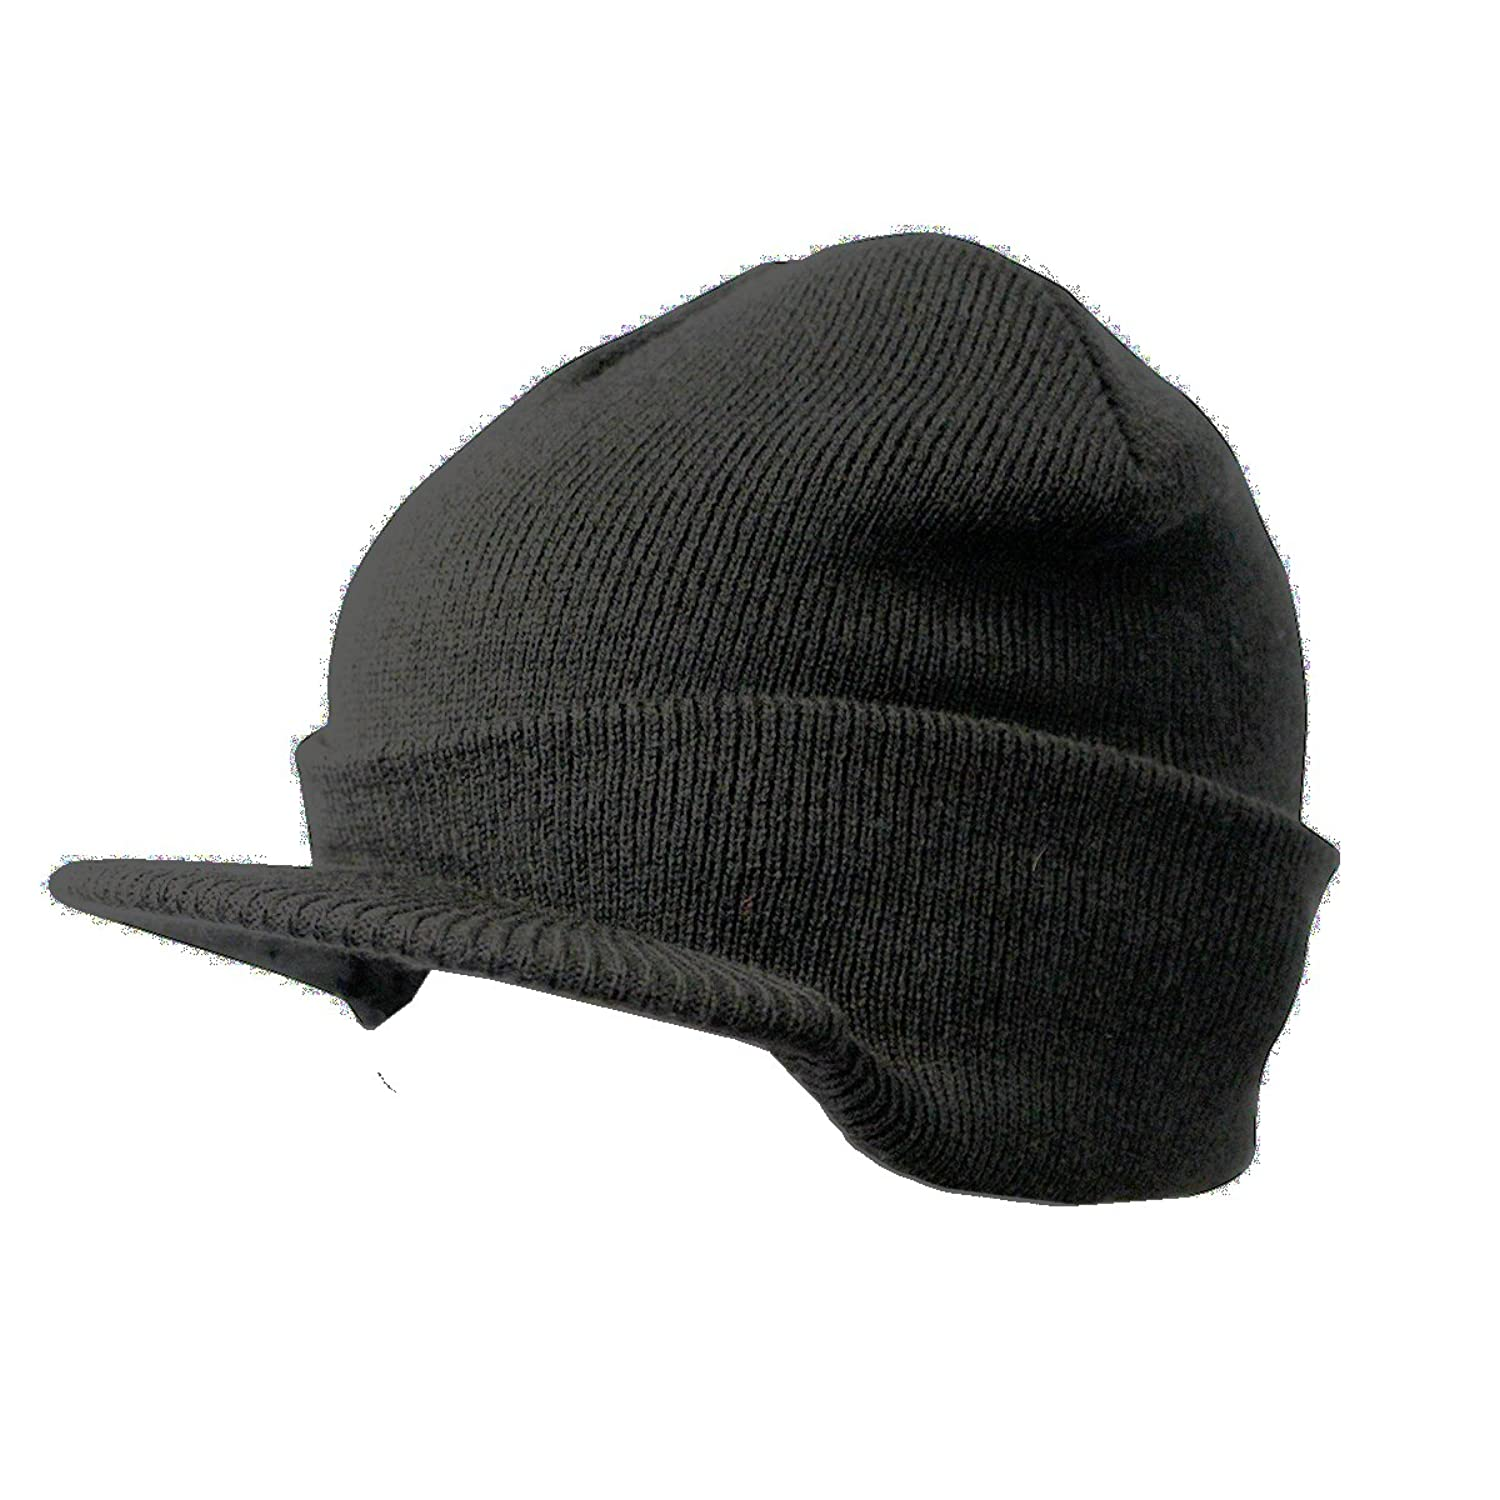 Winter Hats - Winter Cap - Warm Hat with Brim for Men for Women by CoverYourHair